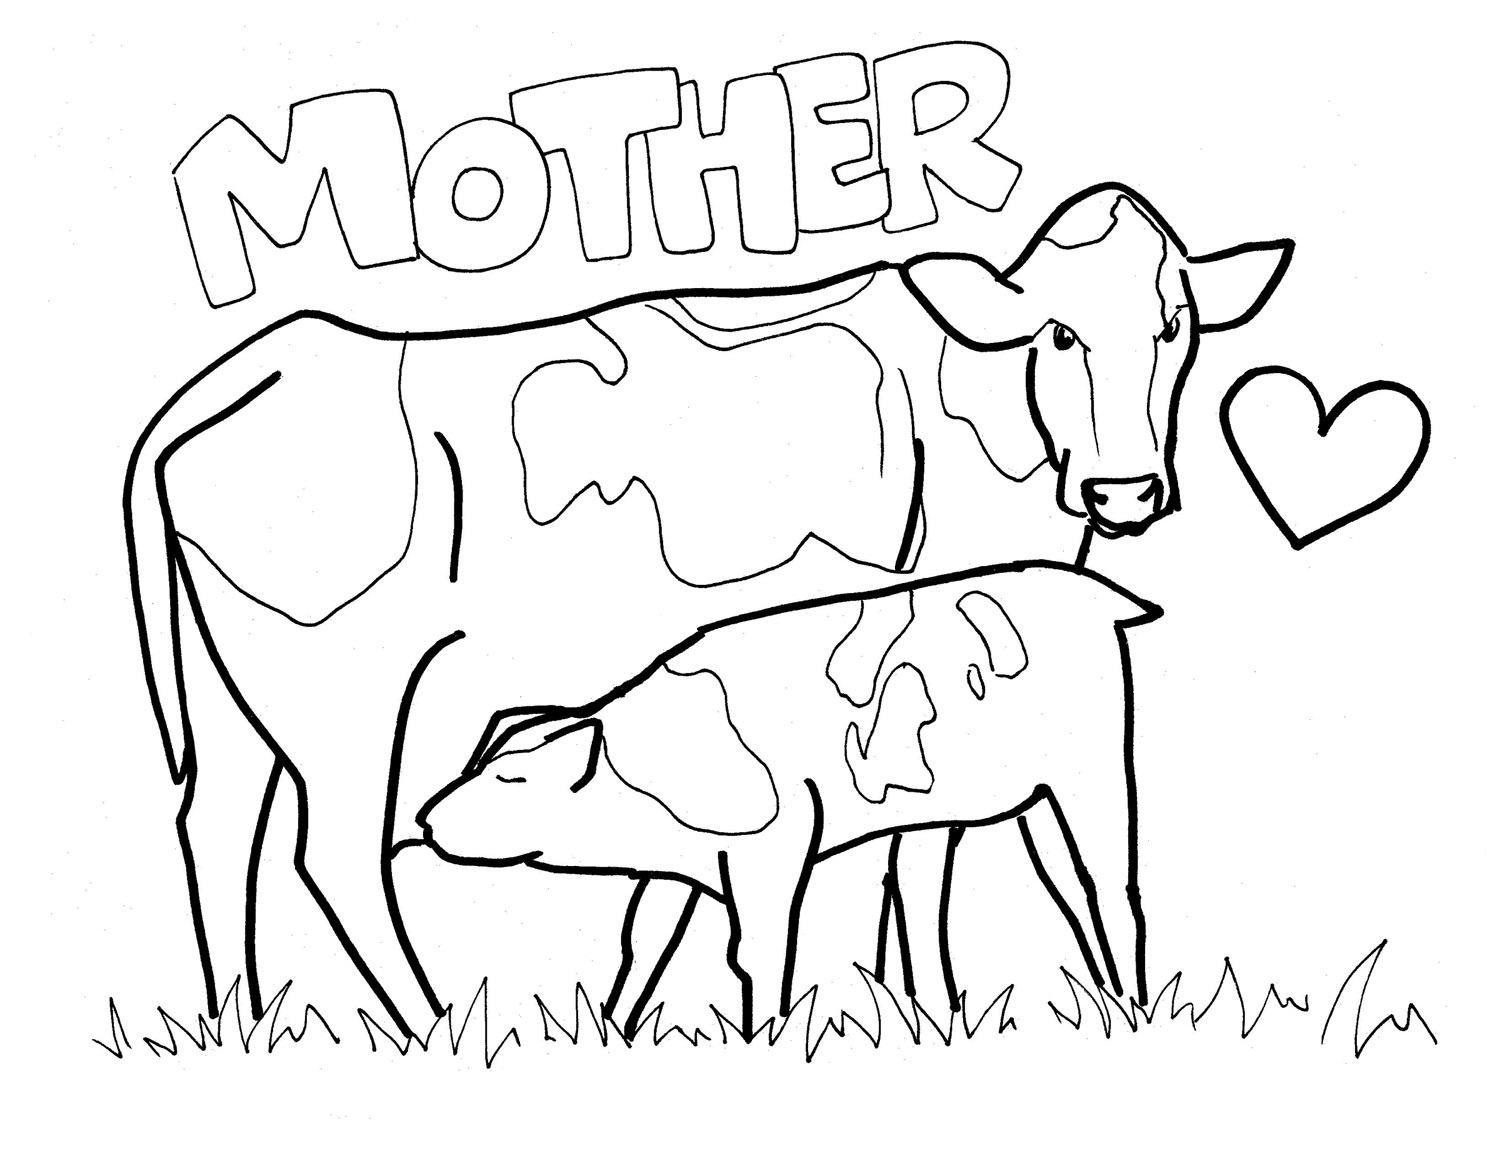 Cows Drawing at GetDrawings.com | Free for personal use Cows Drawing ...